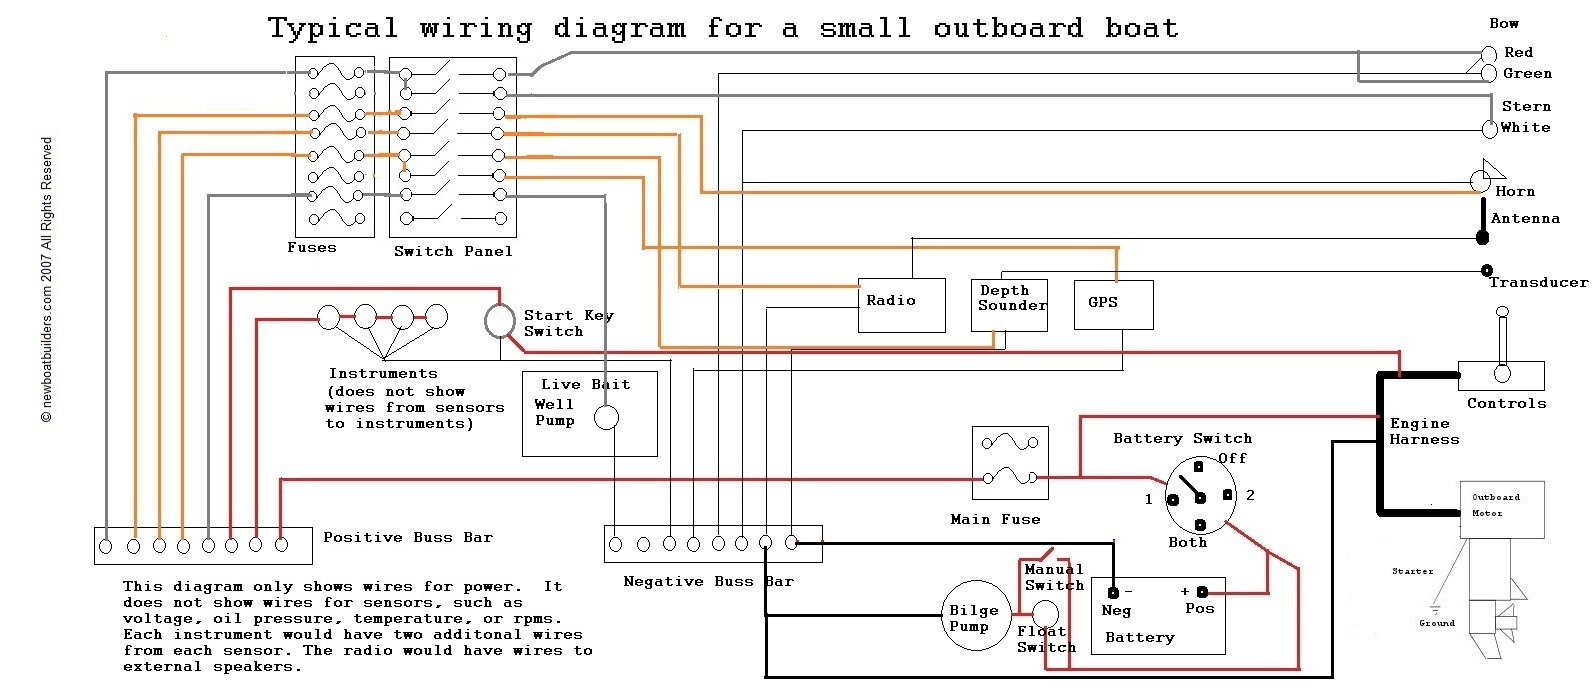 Basic 12 Volt Boat Wiring Diagram